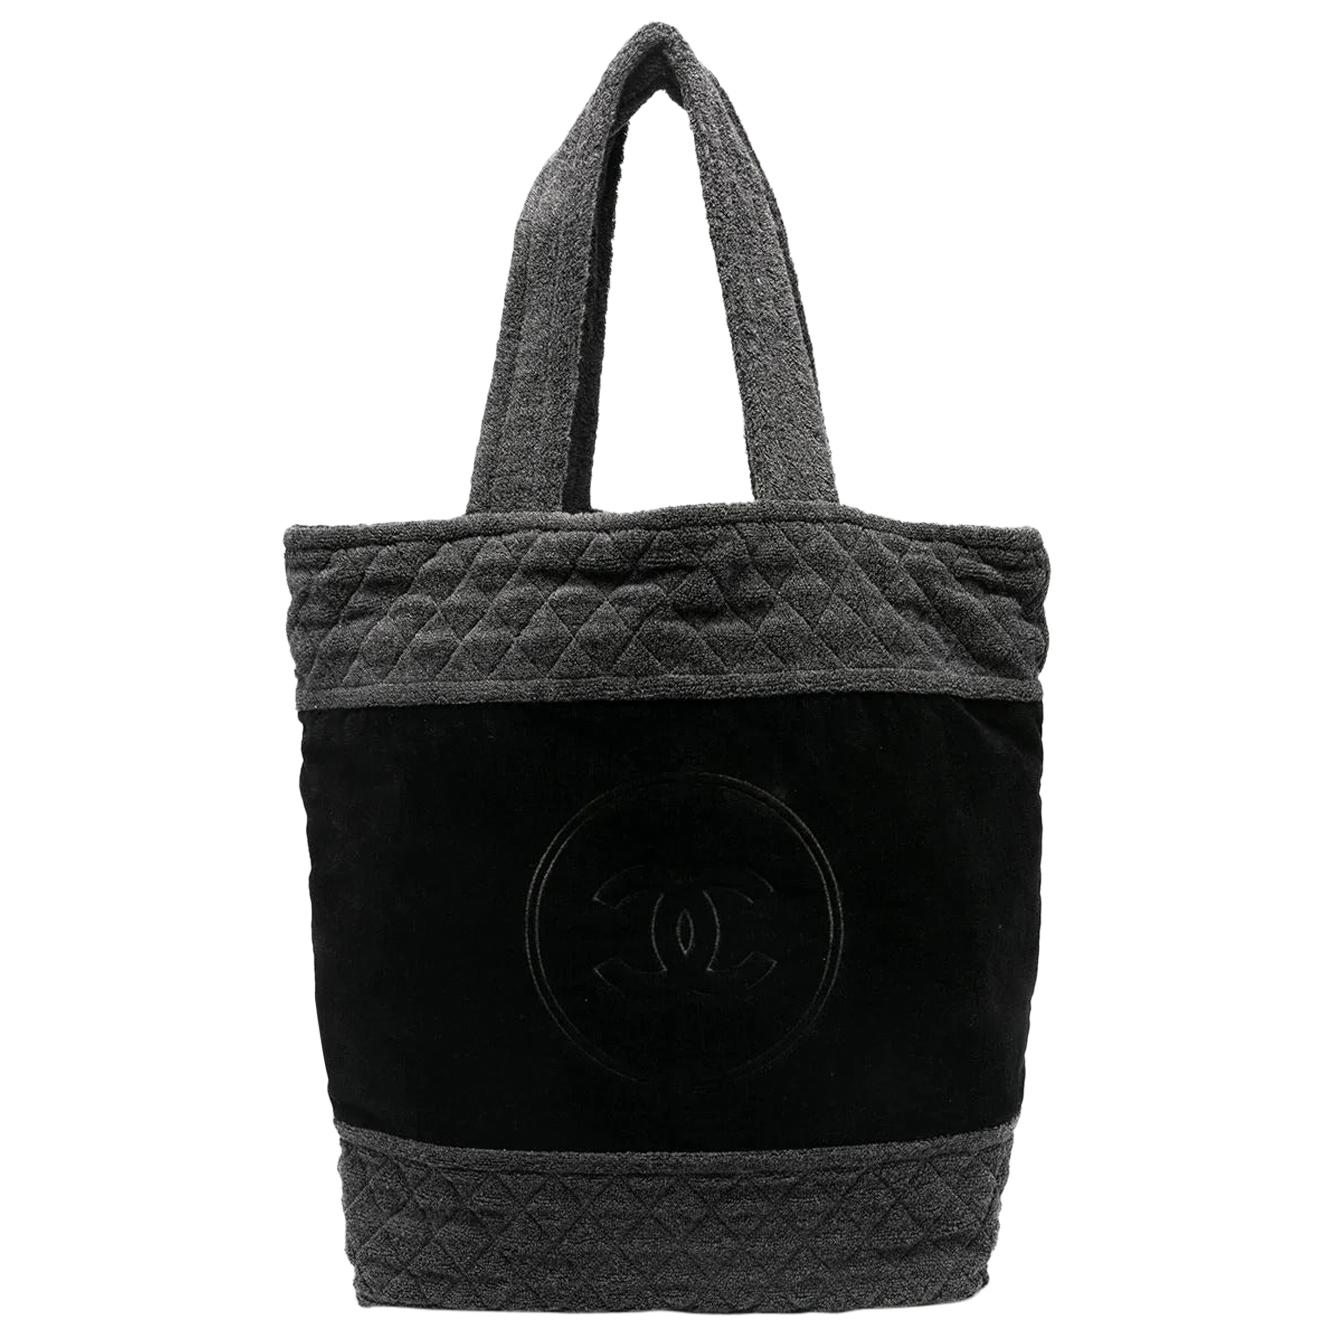 Chanel Terry Cloth Tote